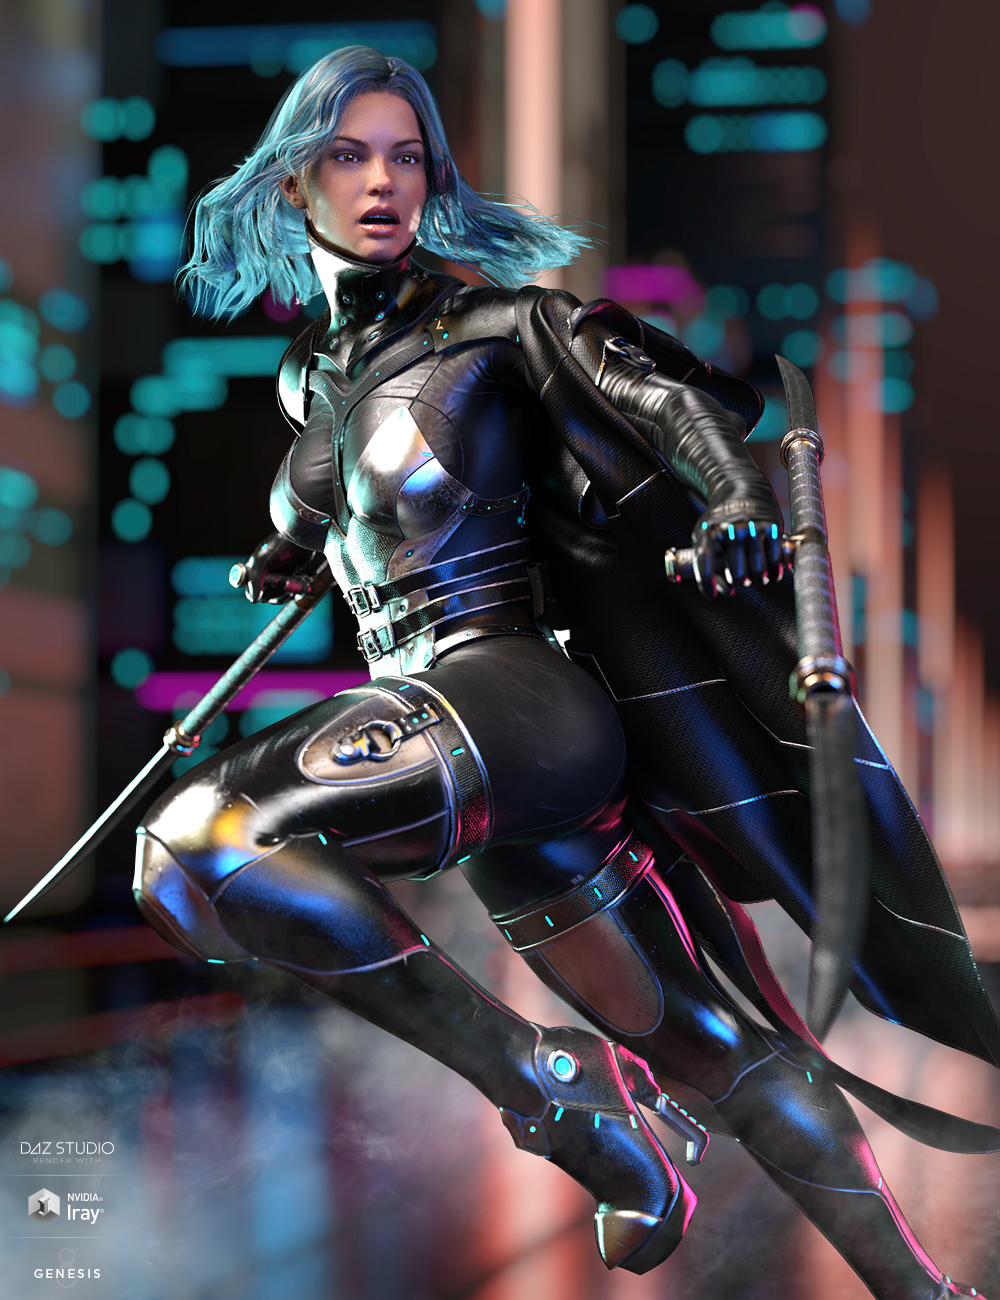 dForce Void Suit-X Outfit and Weapons for Genesis 8 Female(s) by: HM, 3D Models by Daz 3D